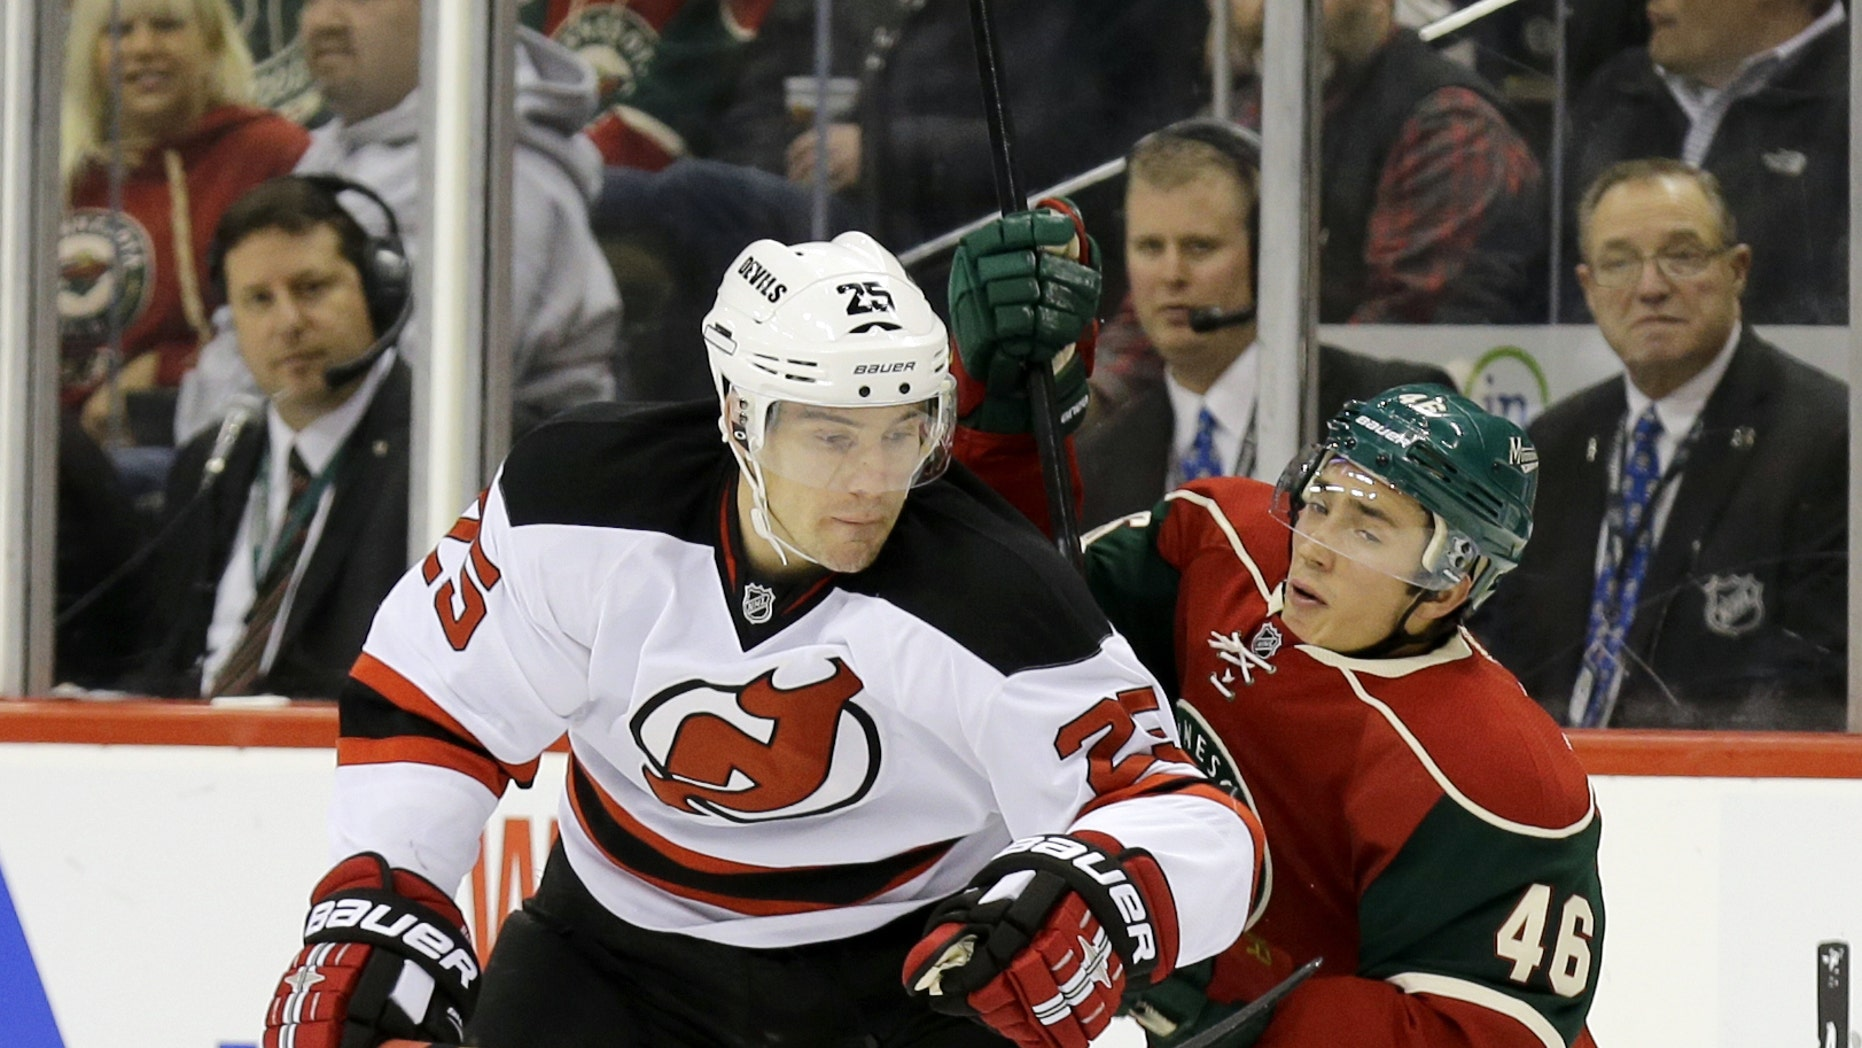 New Jersey Devils center Rostislav Olesz (25), of Czech Republic, and Minnesota Wild defenseman Jared Spurgeon get tangled as they battle for the puck during the second period of an NHL hockey game in St. Paul, Minn., Sunday, Nov. 3, 2013. (AP Photo/Ann Heisenfelt)